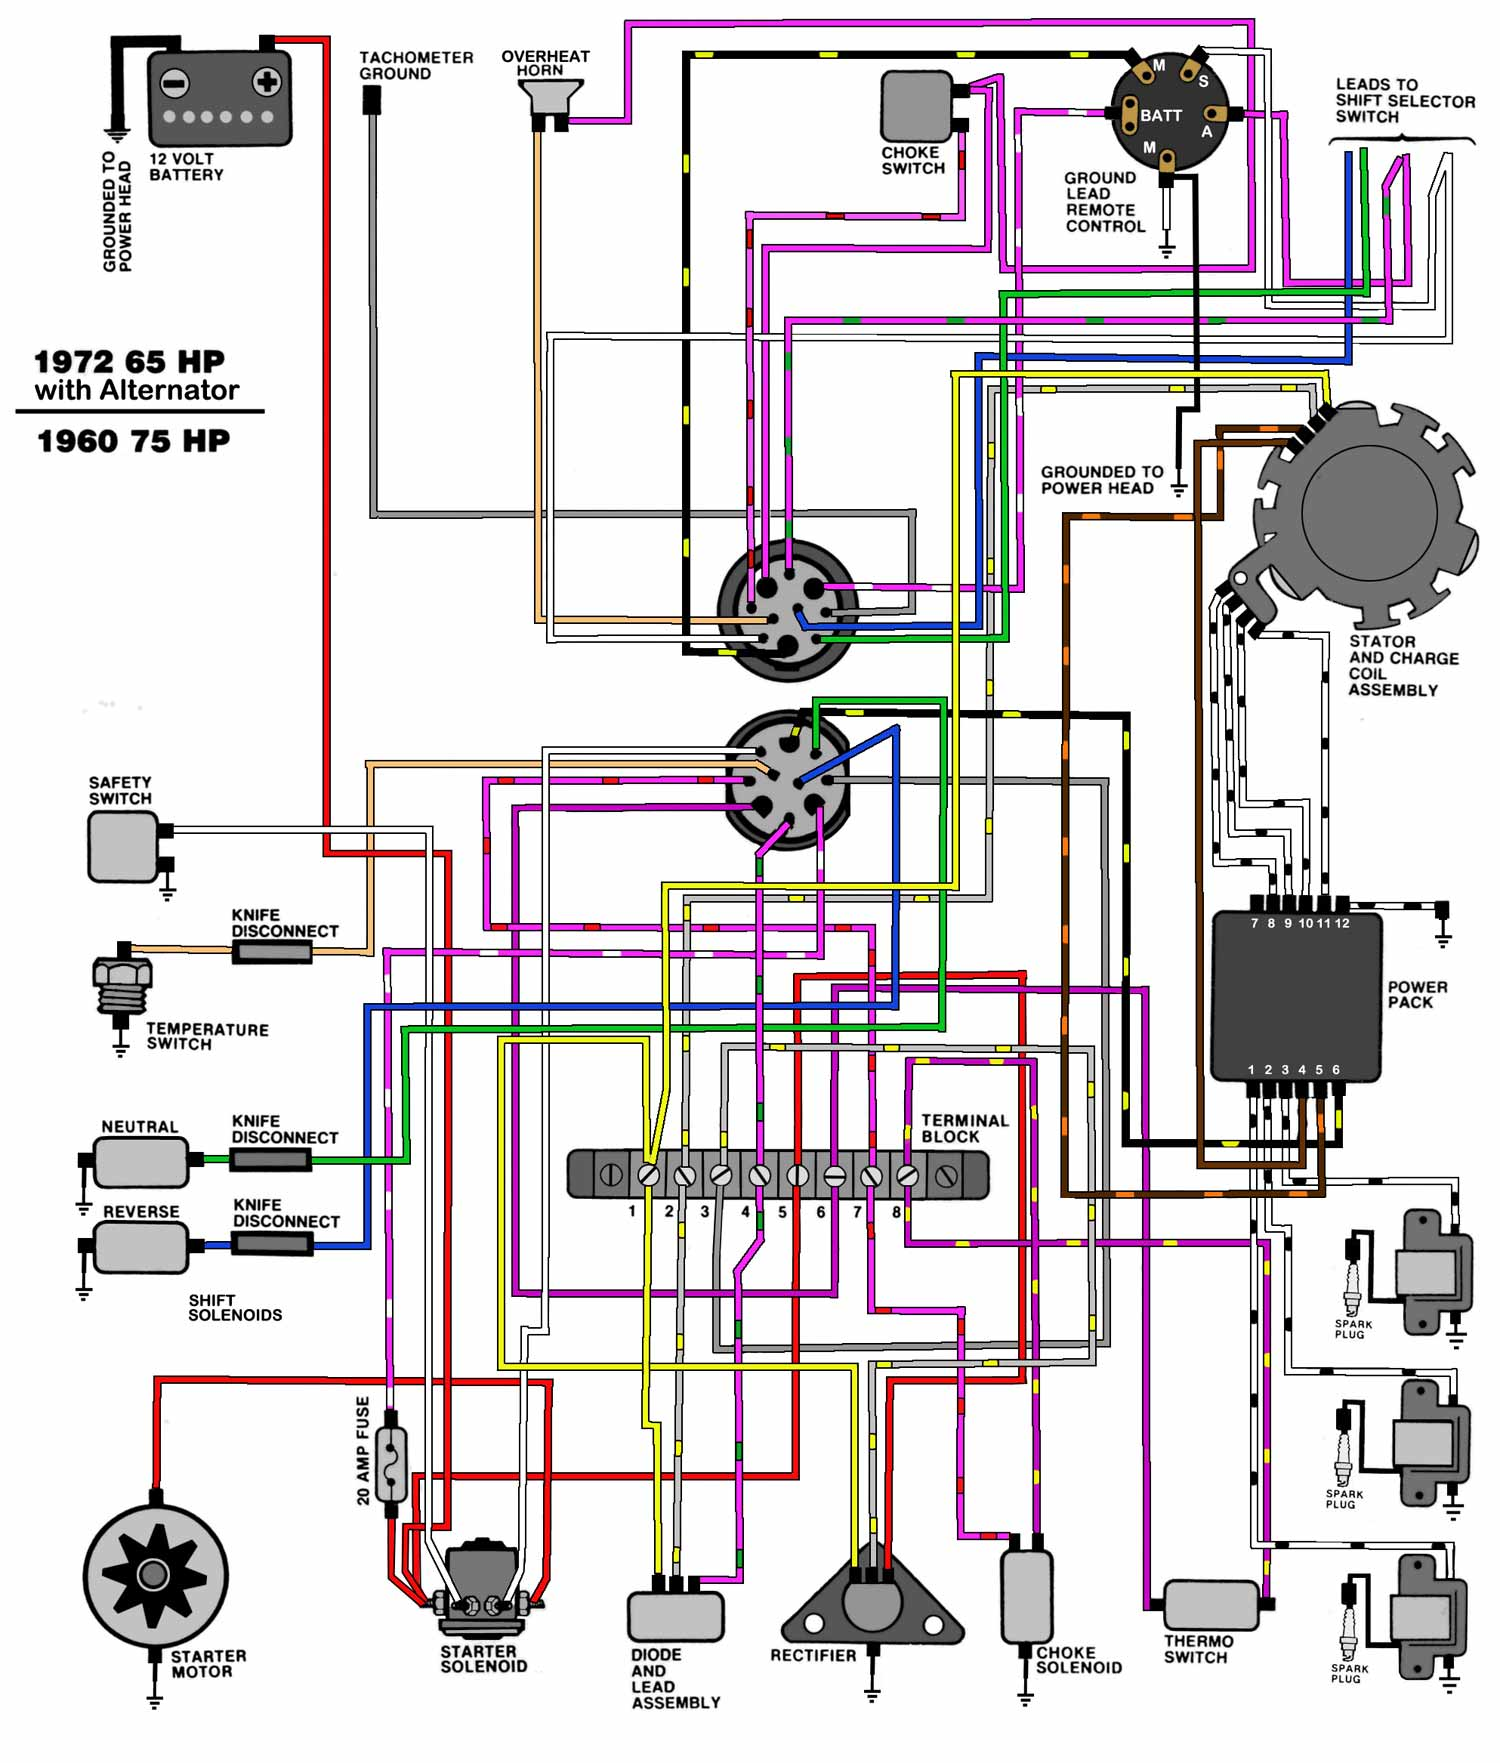 likewise  besides  besides  as well 1972 65 Eshift together with img17 additionally IgnSw additionally 4mv besides 69 70 V4 furthermore  besides . on 65 hp mercury wiring diagram